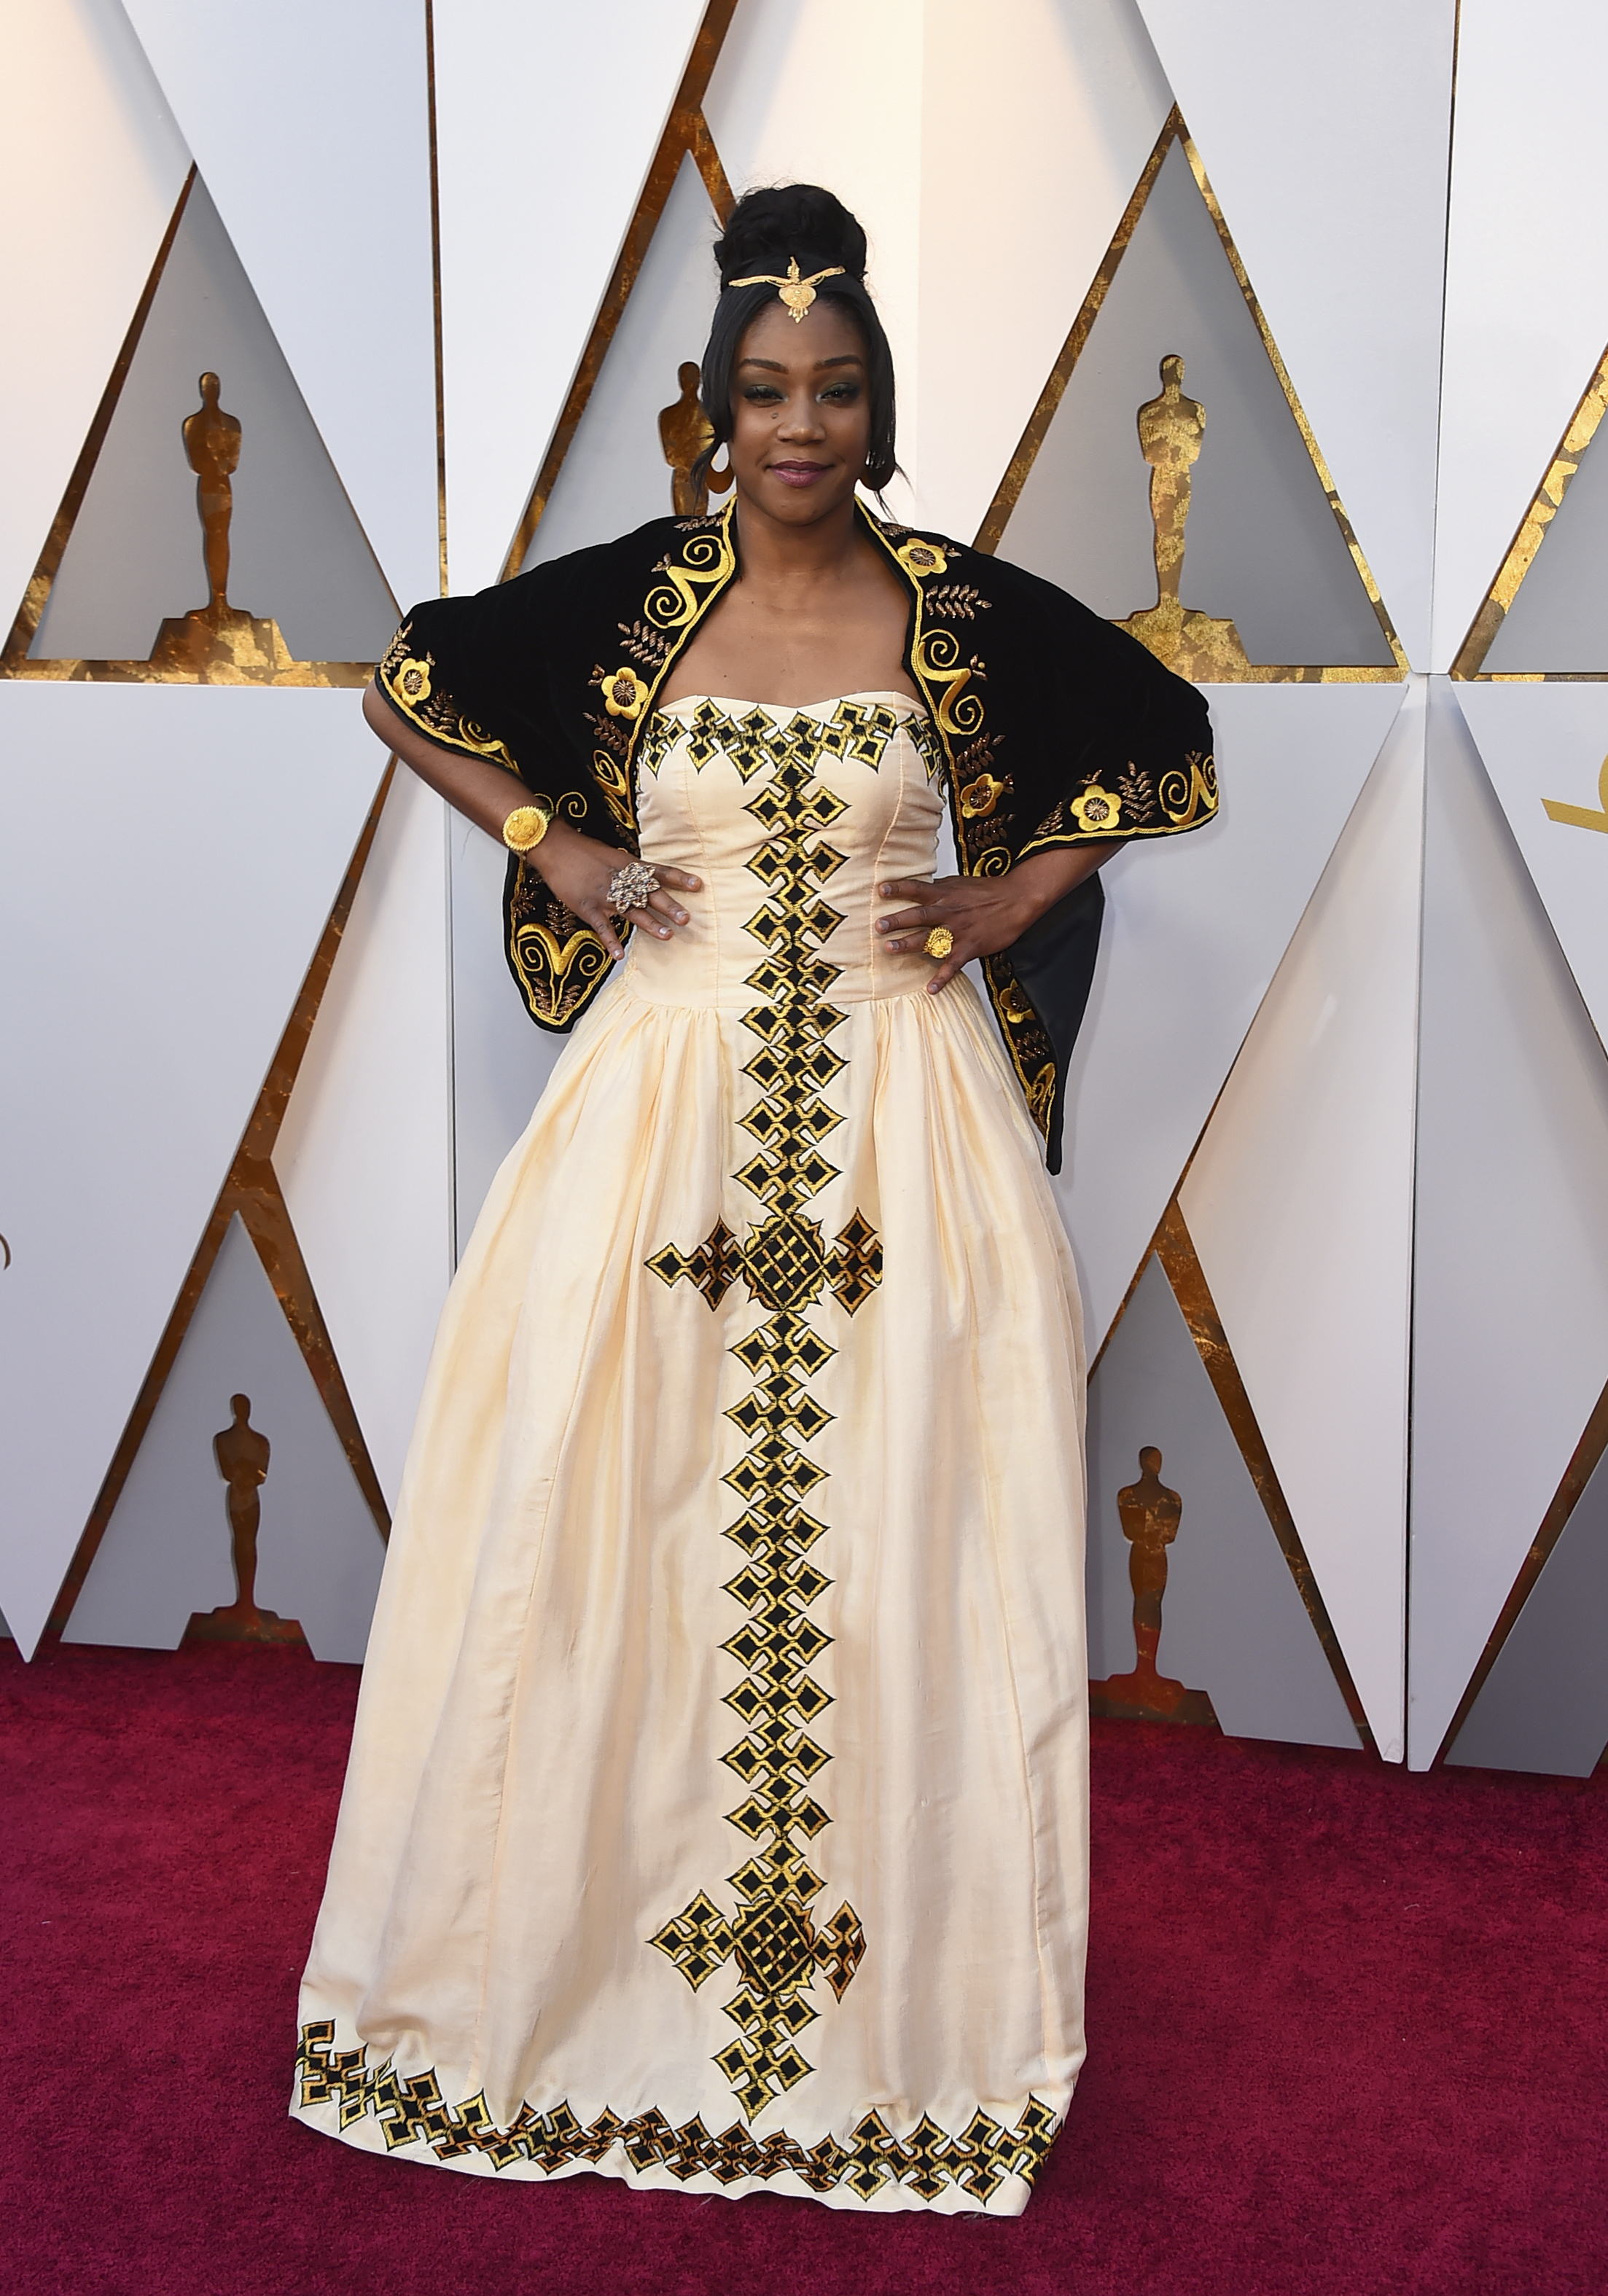 <div class='meta'><div class='origin-logo' data-origin='none'></div><span class='caption-text' data-credit='Jordan Strauss/Invision/AP'>Tiffany Haddish of ''Girls Trip'' arrives at the Oscars on Sunday, March 4, 2018, at the Dolby Theatre in Los Angeles.</span></div>